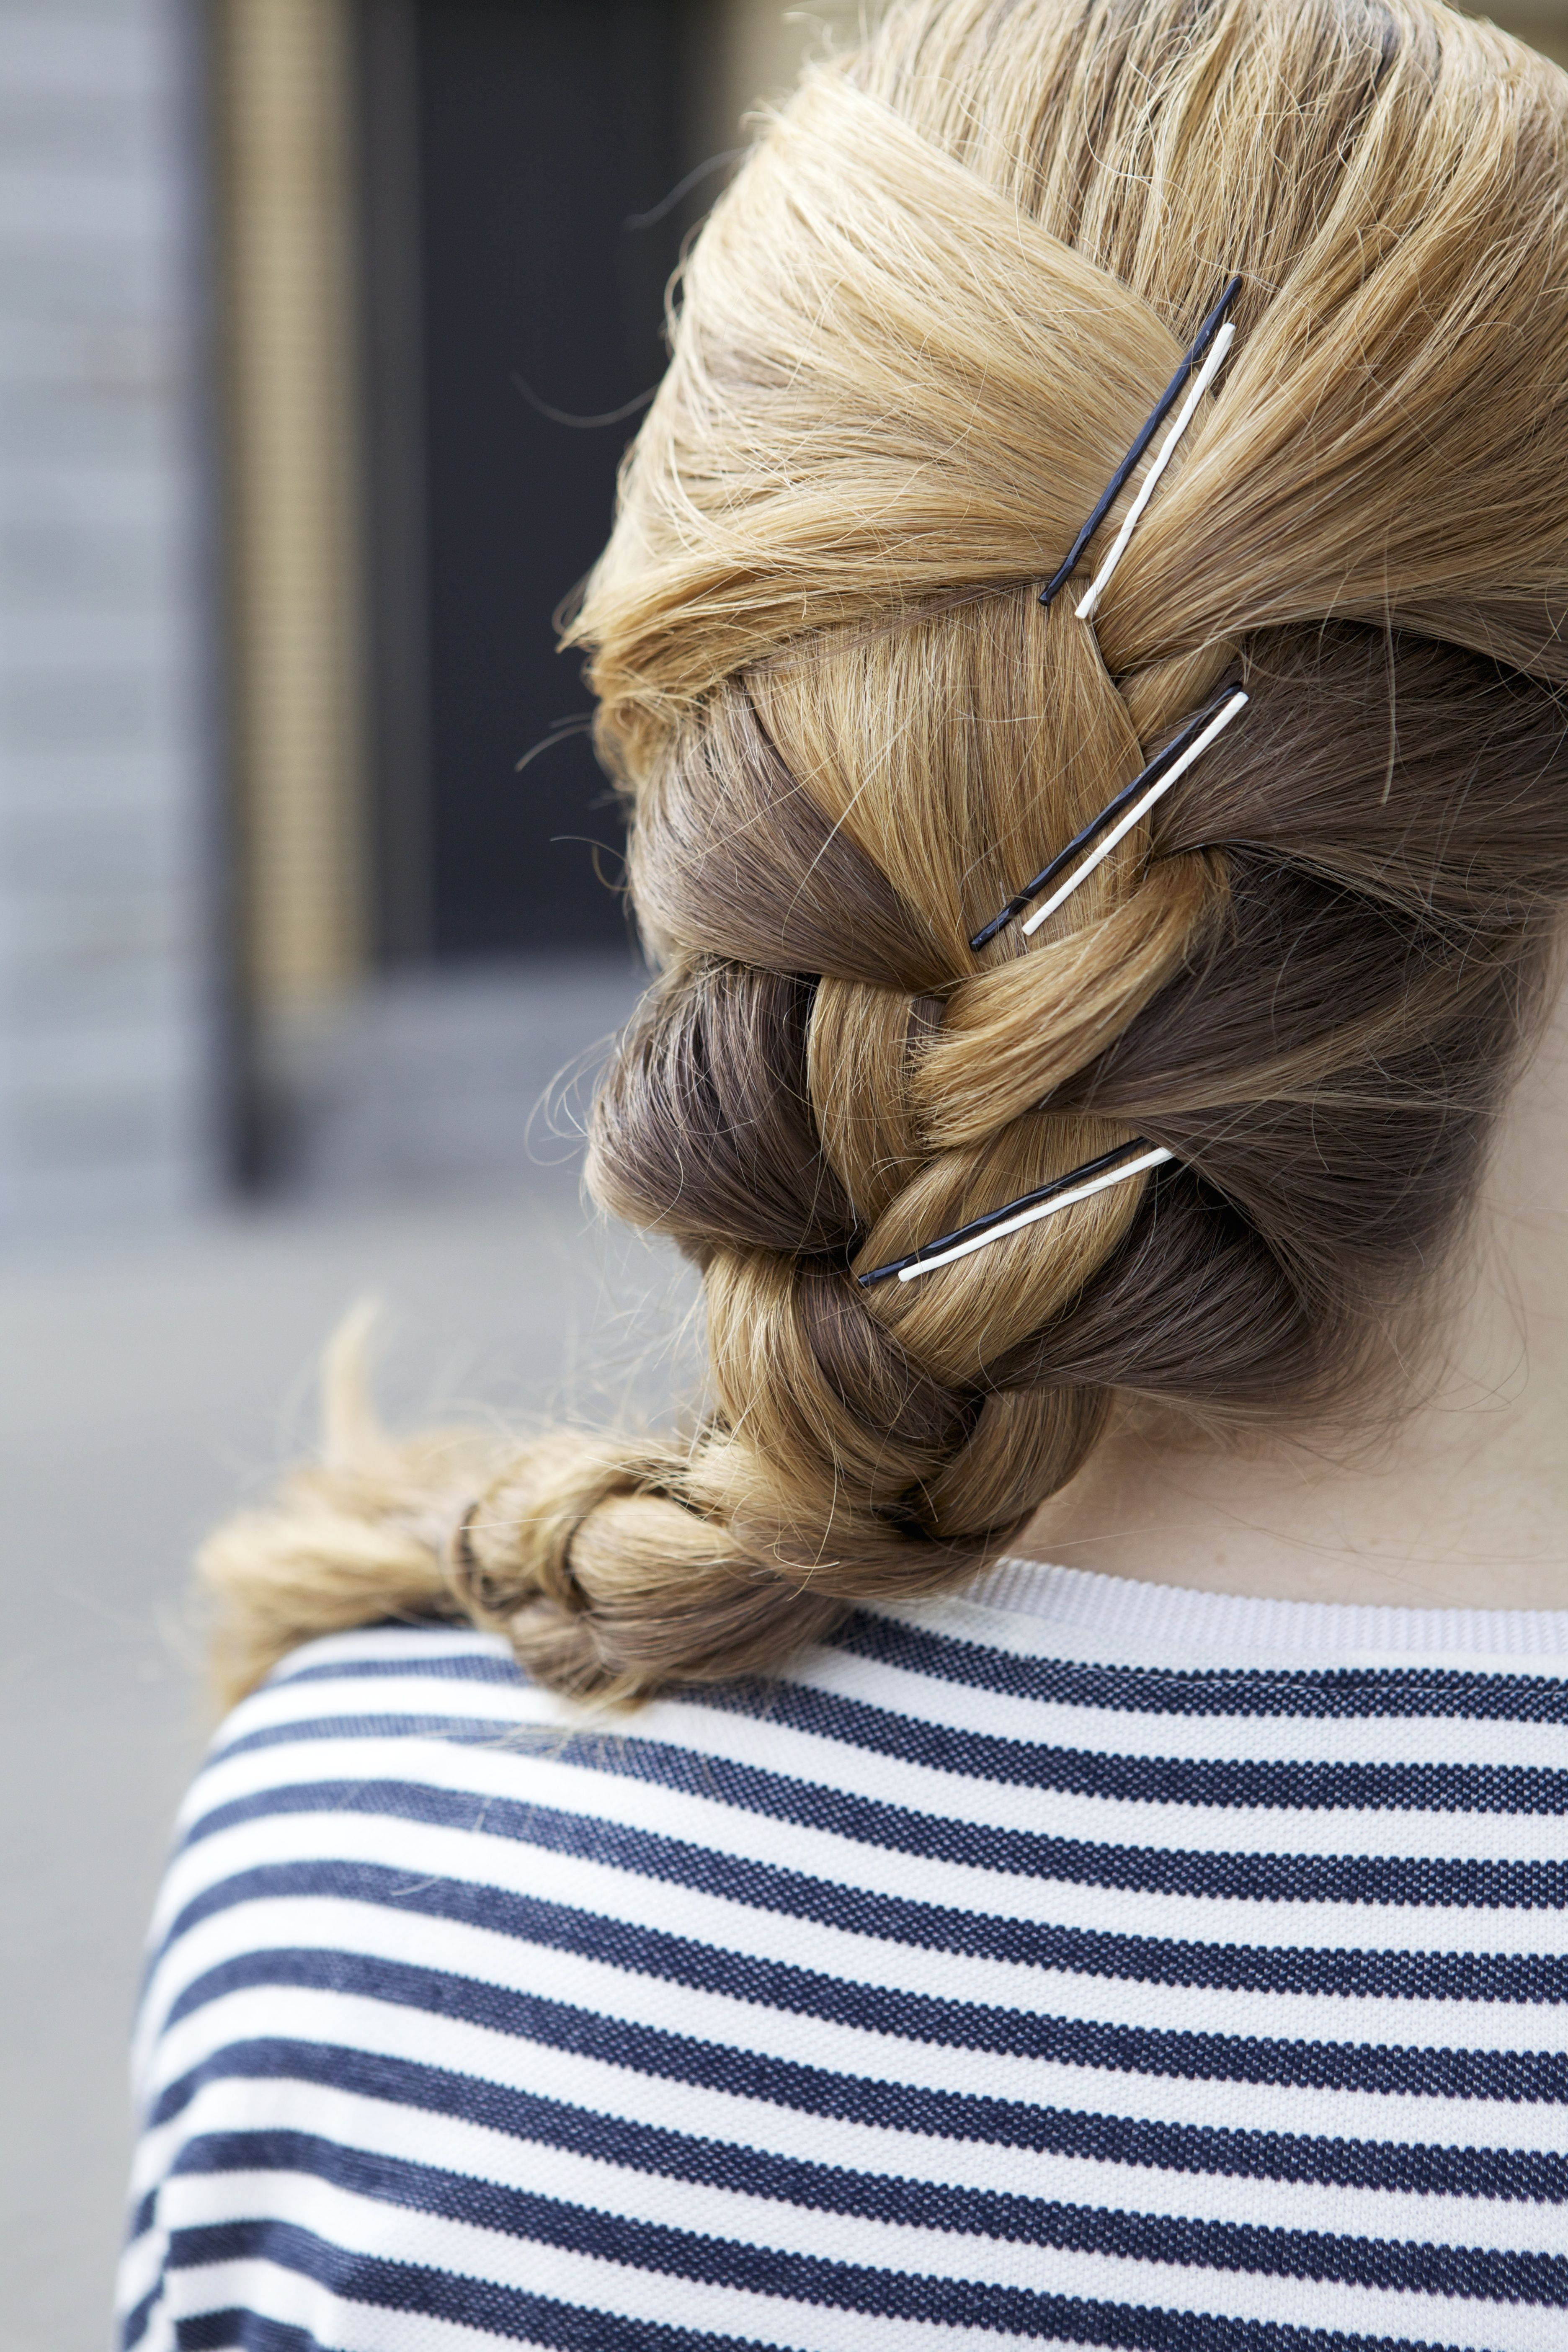 All You Need Is Schuifspeldjes Mode Kapsels Bobby Pins Schoonheidsproducten